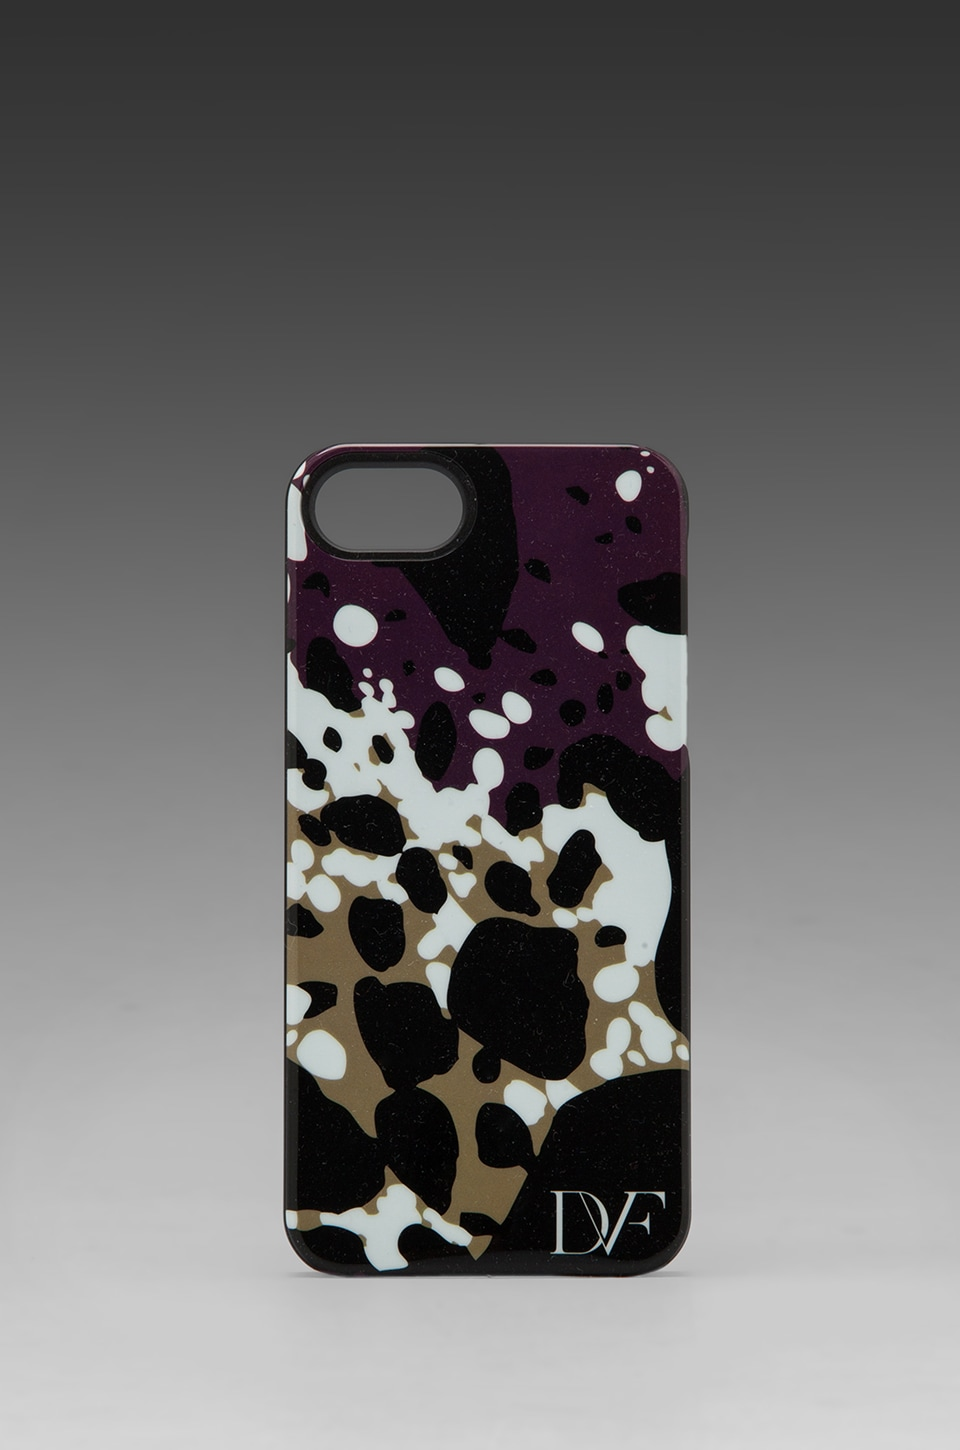 Diane von Furstenberg Iphone 5 Case in Cheetah Splash Purple